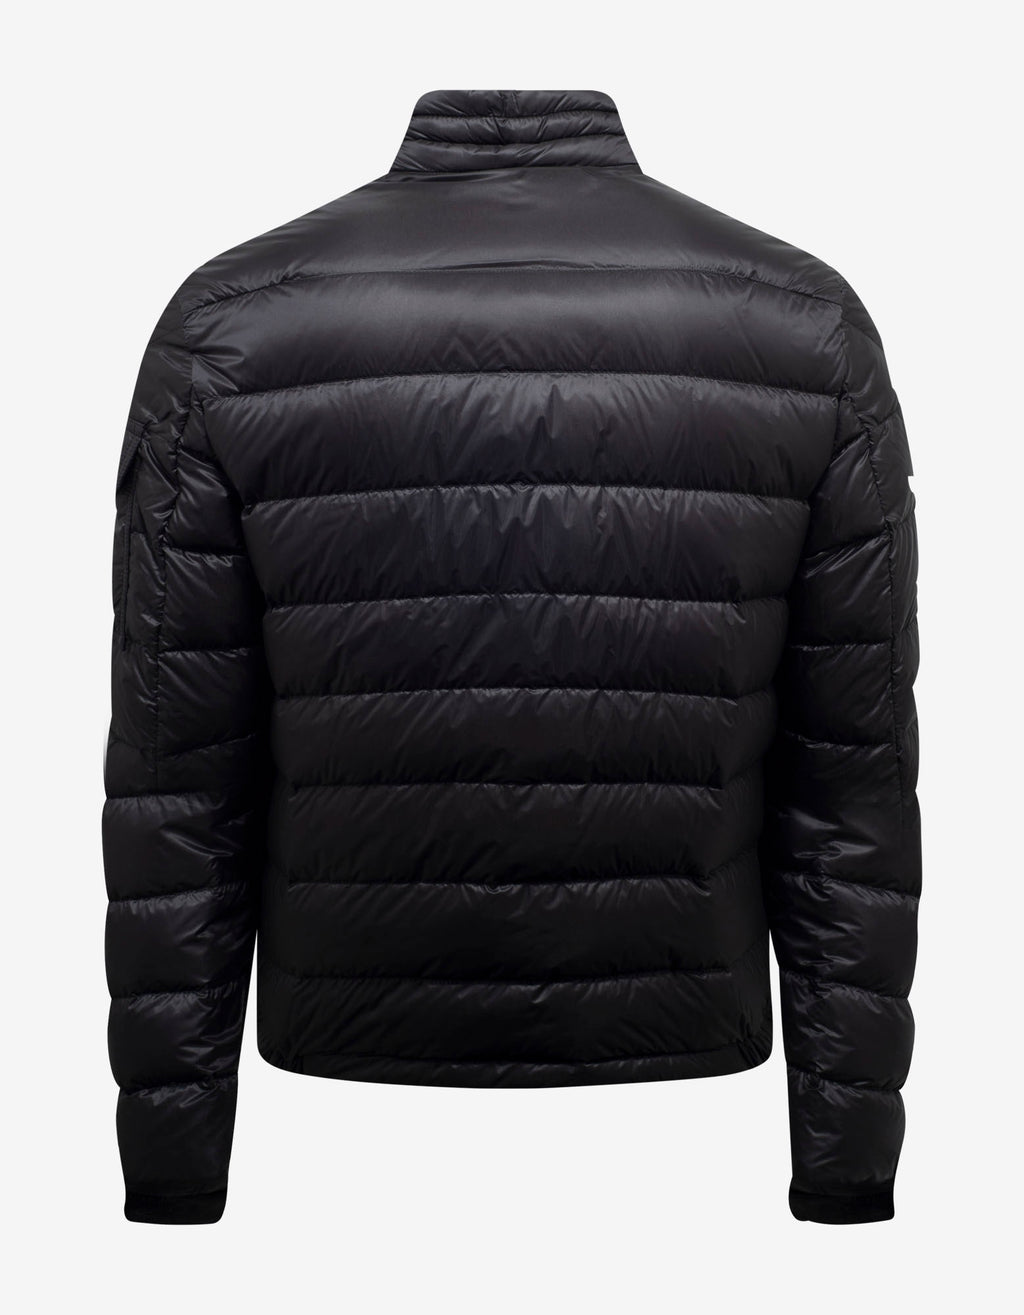 Agay Black Nylon Down Jacket